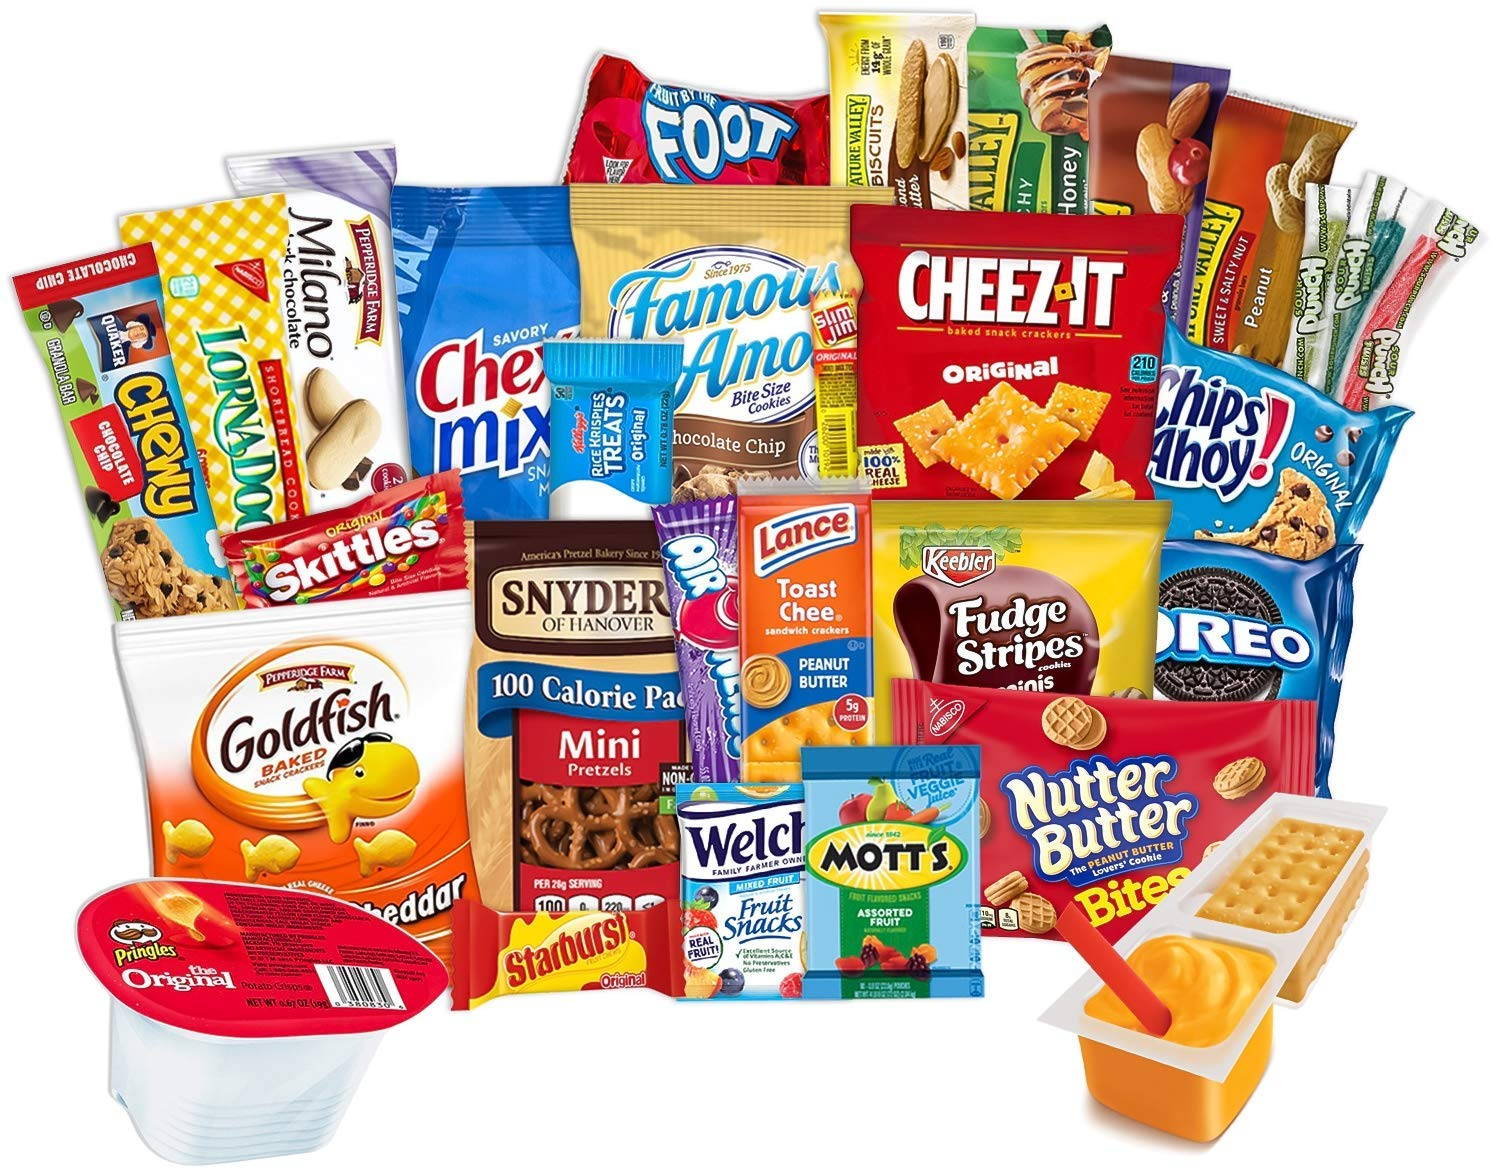 3 AM Snacks Care Package Food Cookies Bar Chips Candy Ultimate Variety Gift Box Pack Assortment Basket Bundle Mix Bulk Sampler Treats College Students Final Exam Office Easter 45 Pack